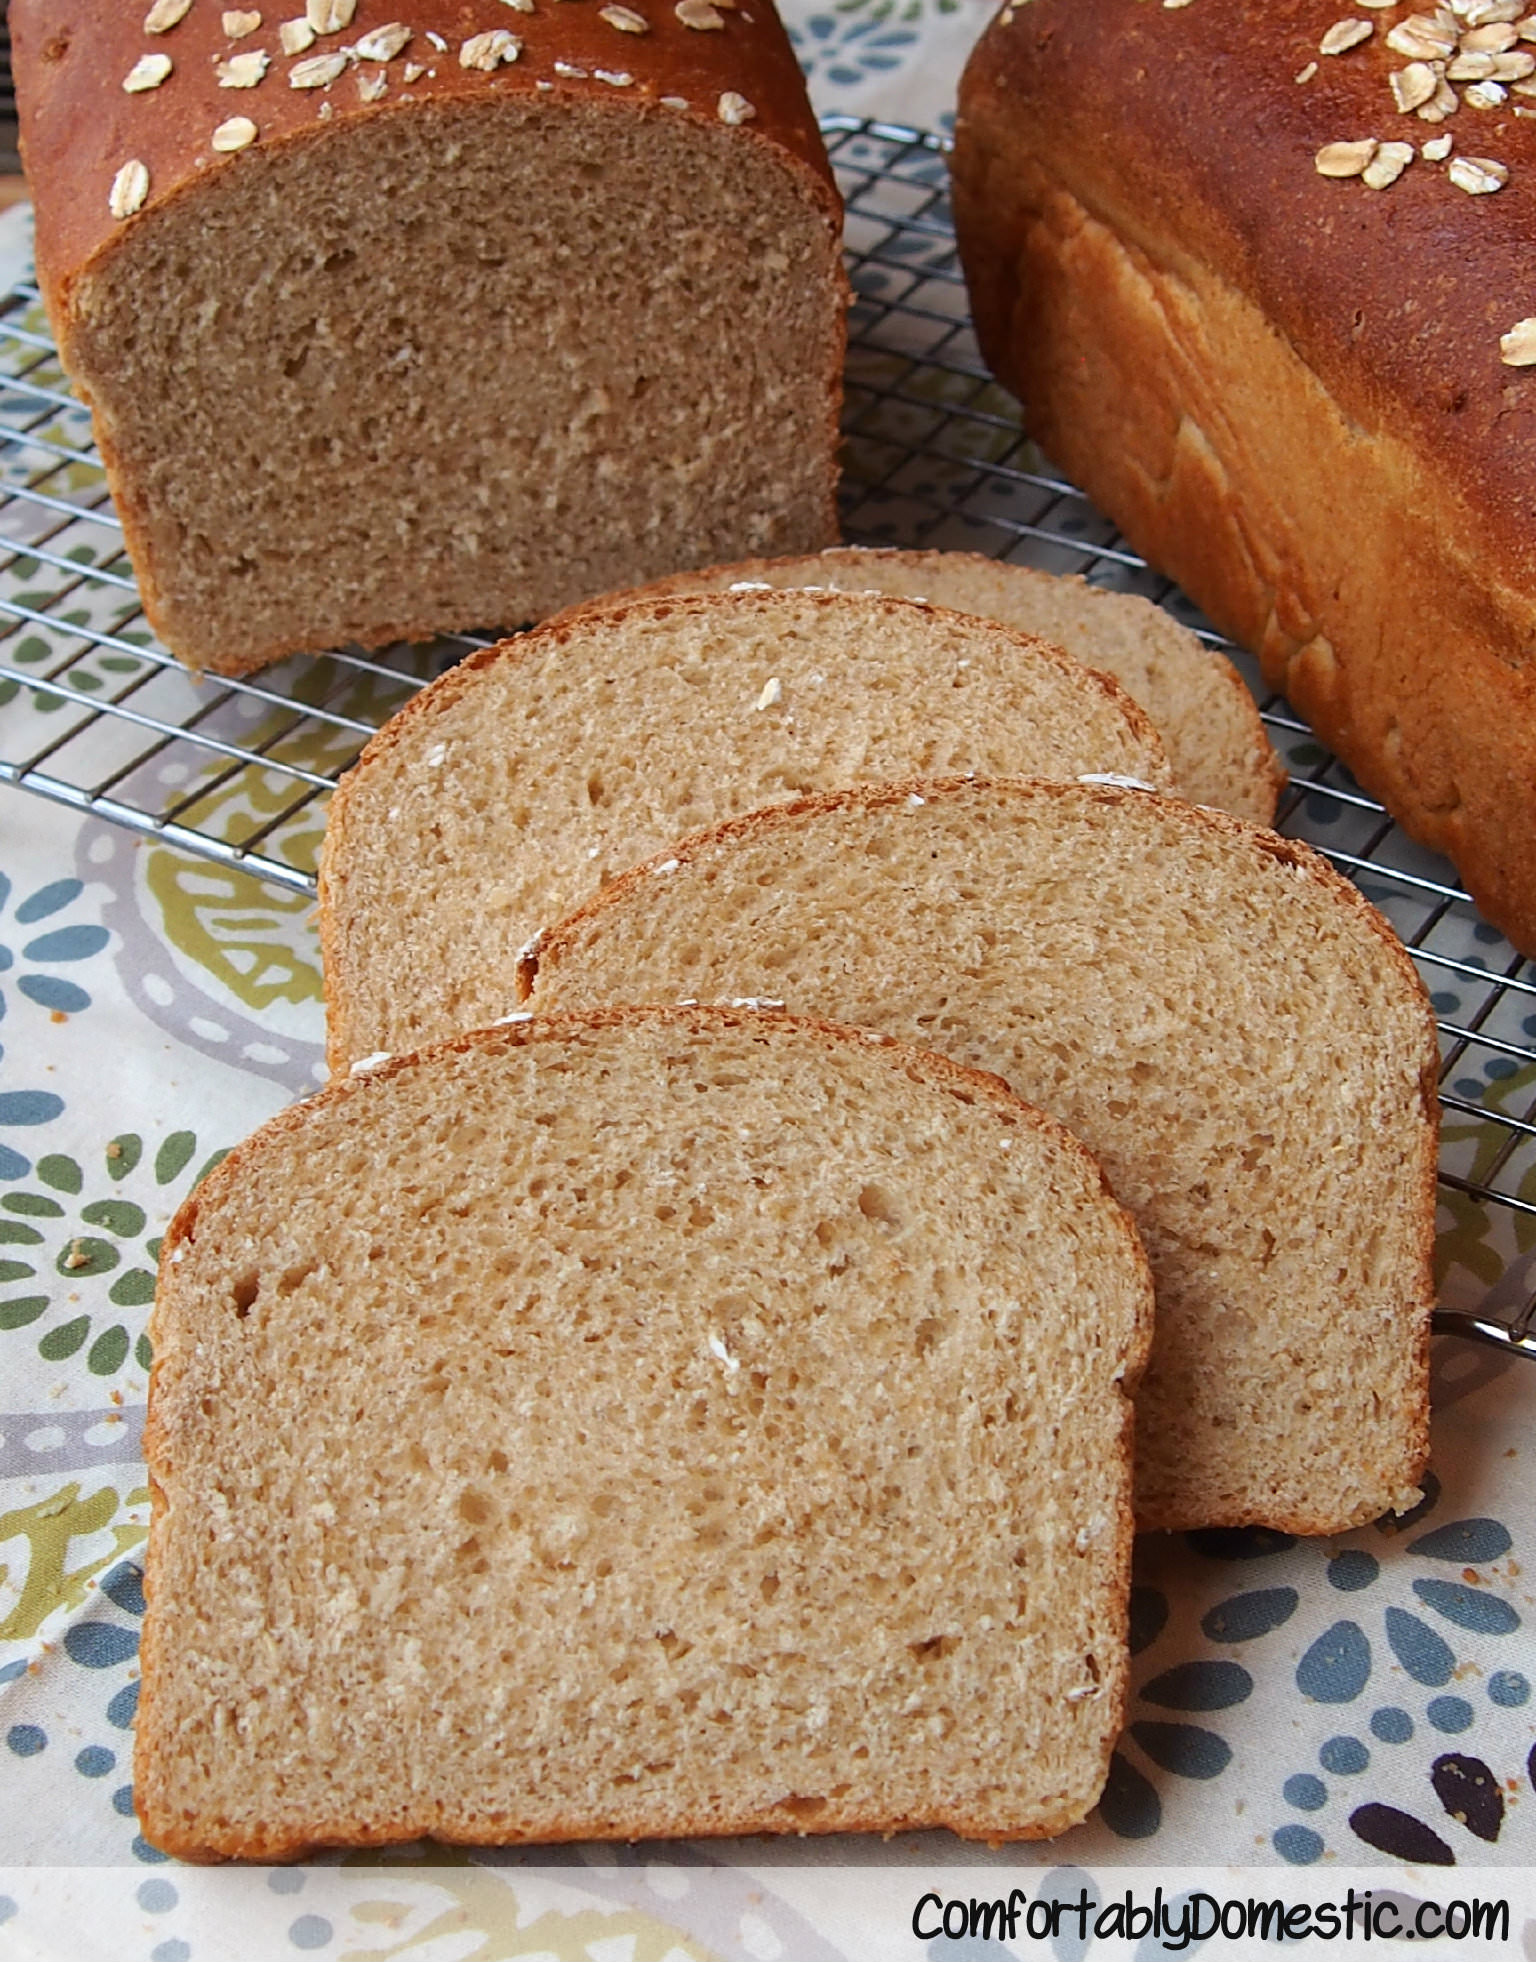 Honey Oatmeal Bread from ComfortablyDomestic.com